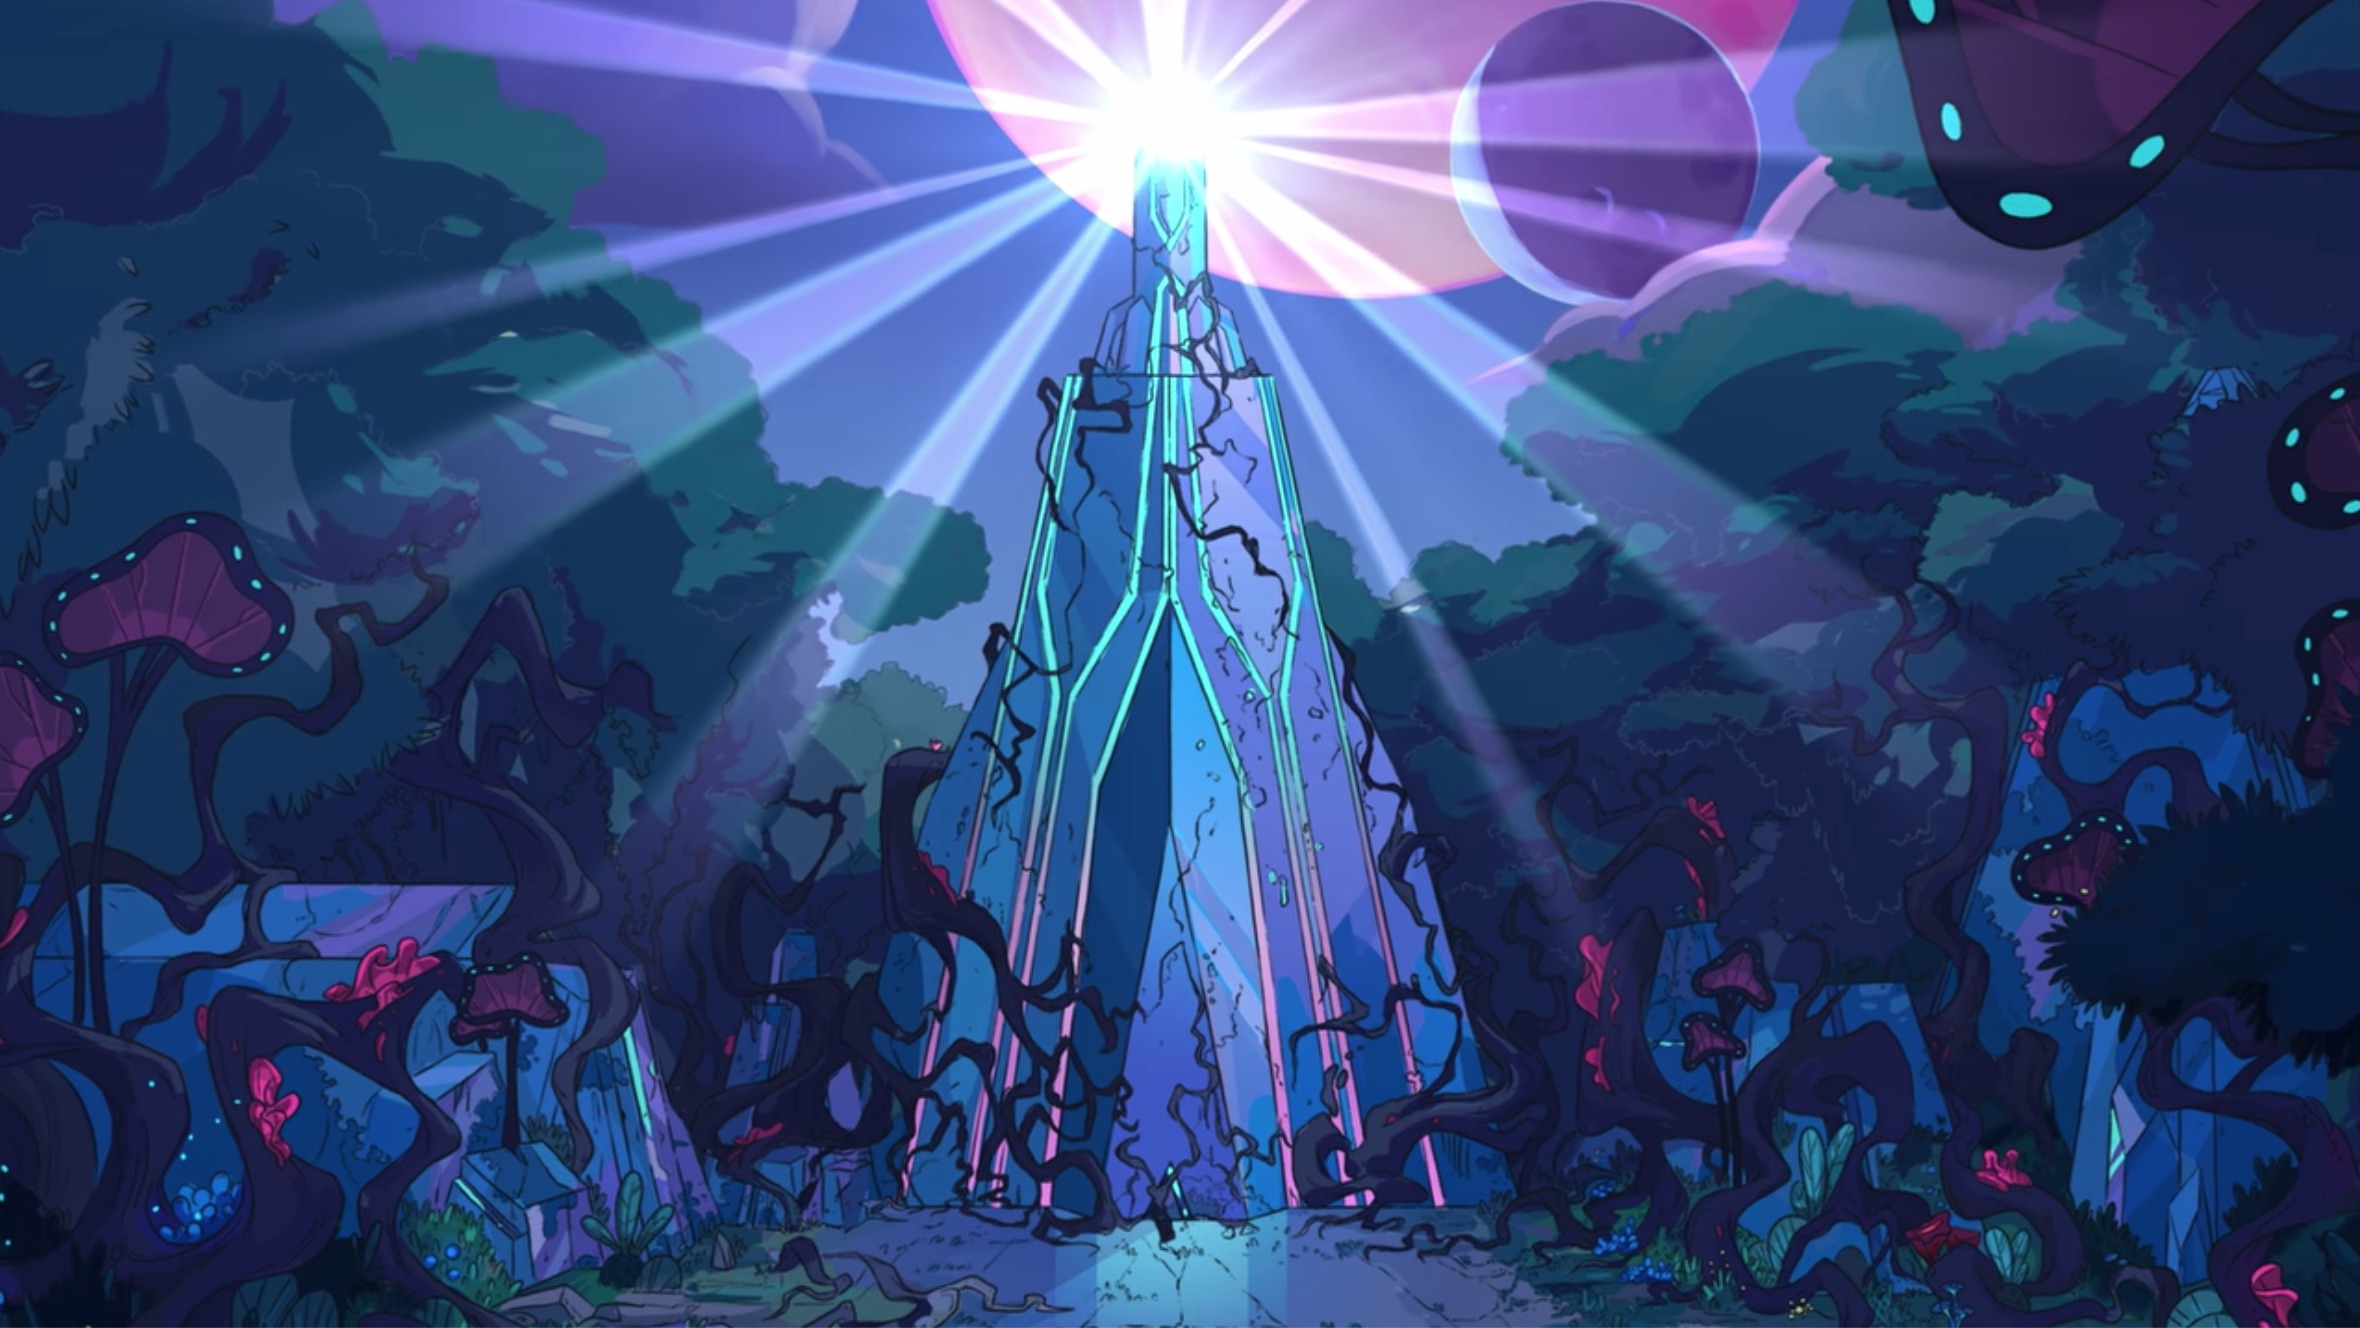 Crystal Castle (She-Ra and the Princesses of Power)